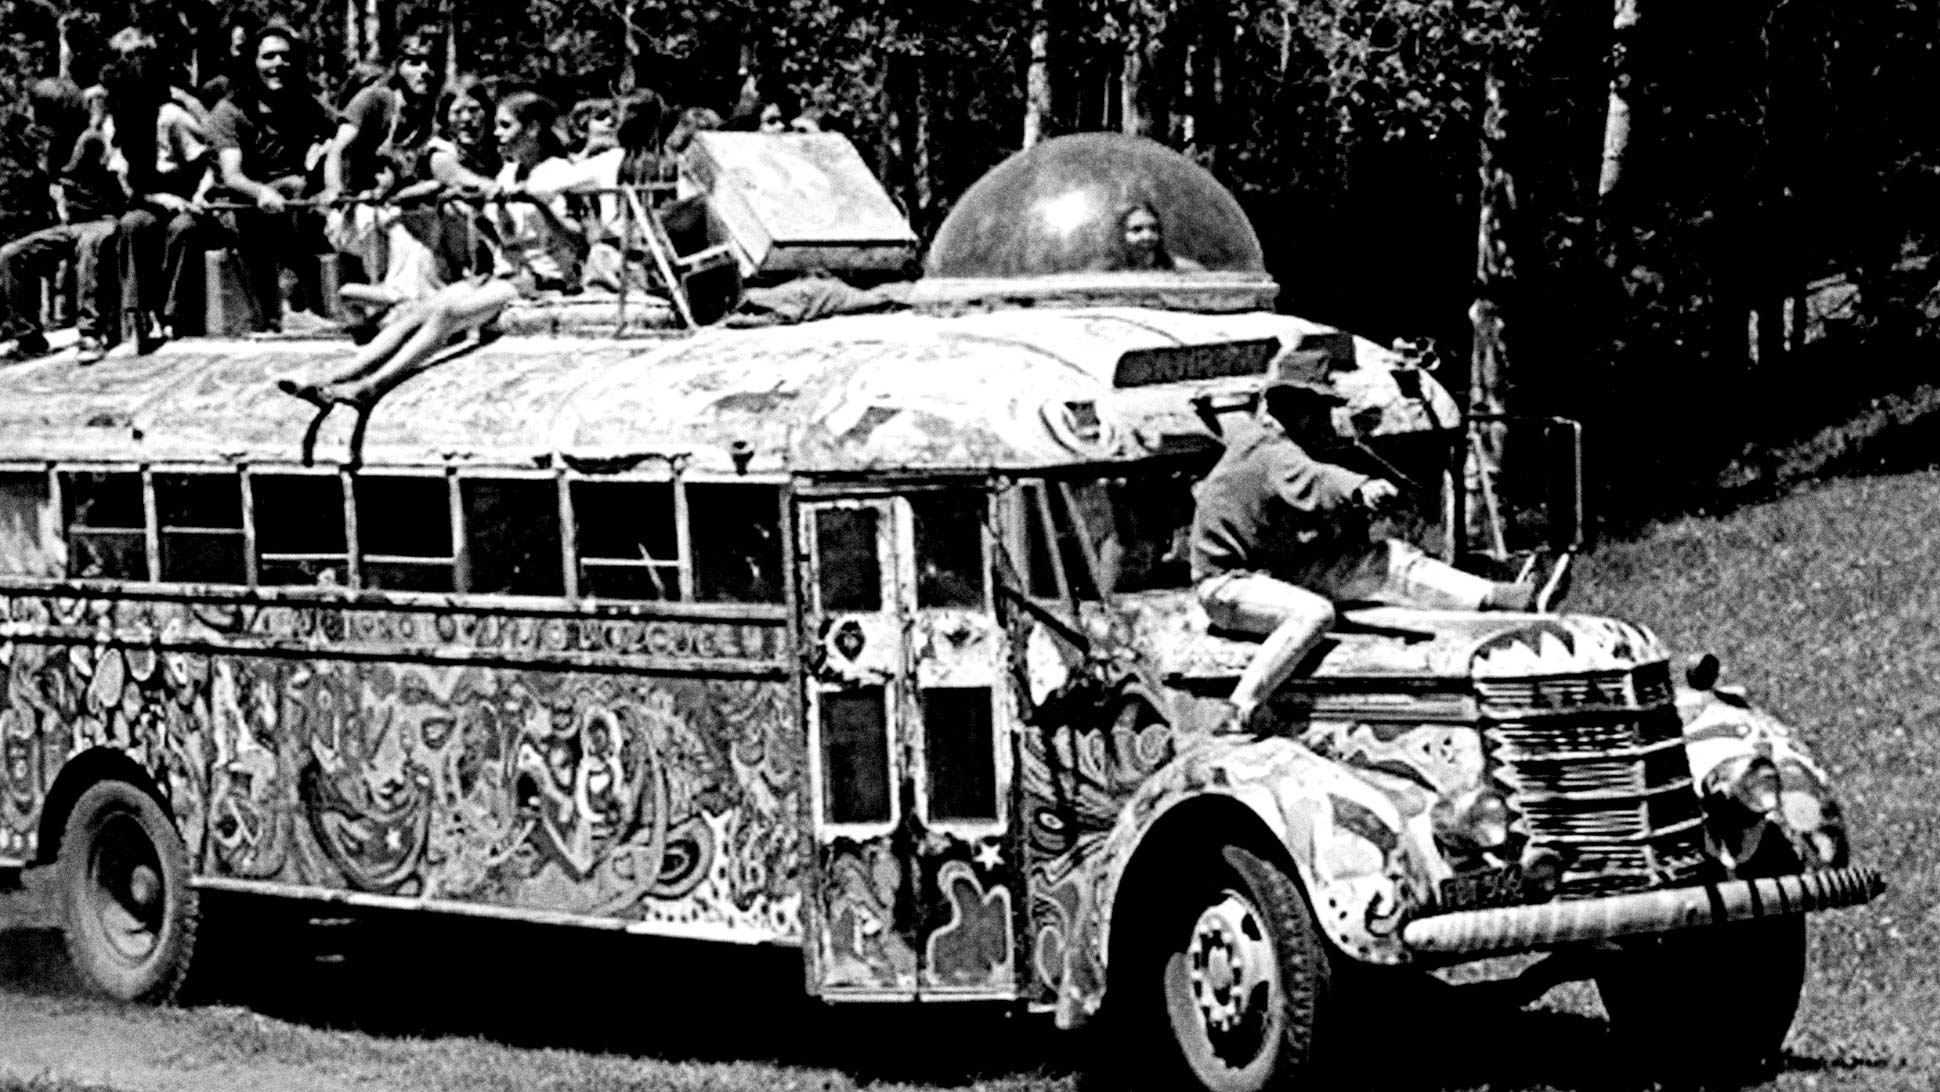 Ken Kesey and the Merry Pranksters roll into town on their psychedelic ride, 'Further', during the Great Bus Race in Aspen Meadows, Santa Fe, New Mexico. Summer Solstice, June 21, 1969. Photo by Lisa Law